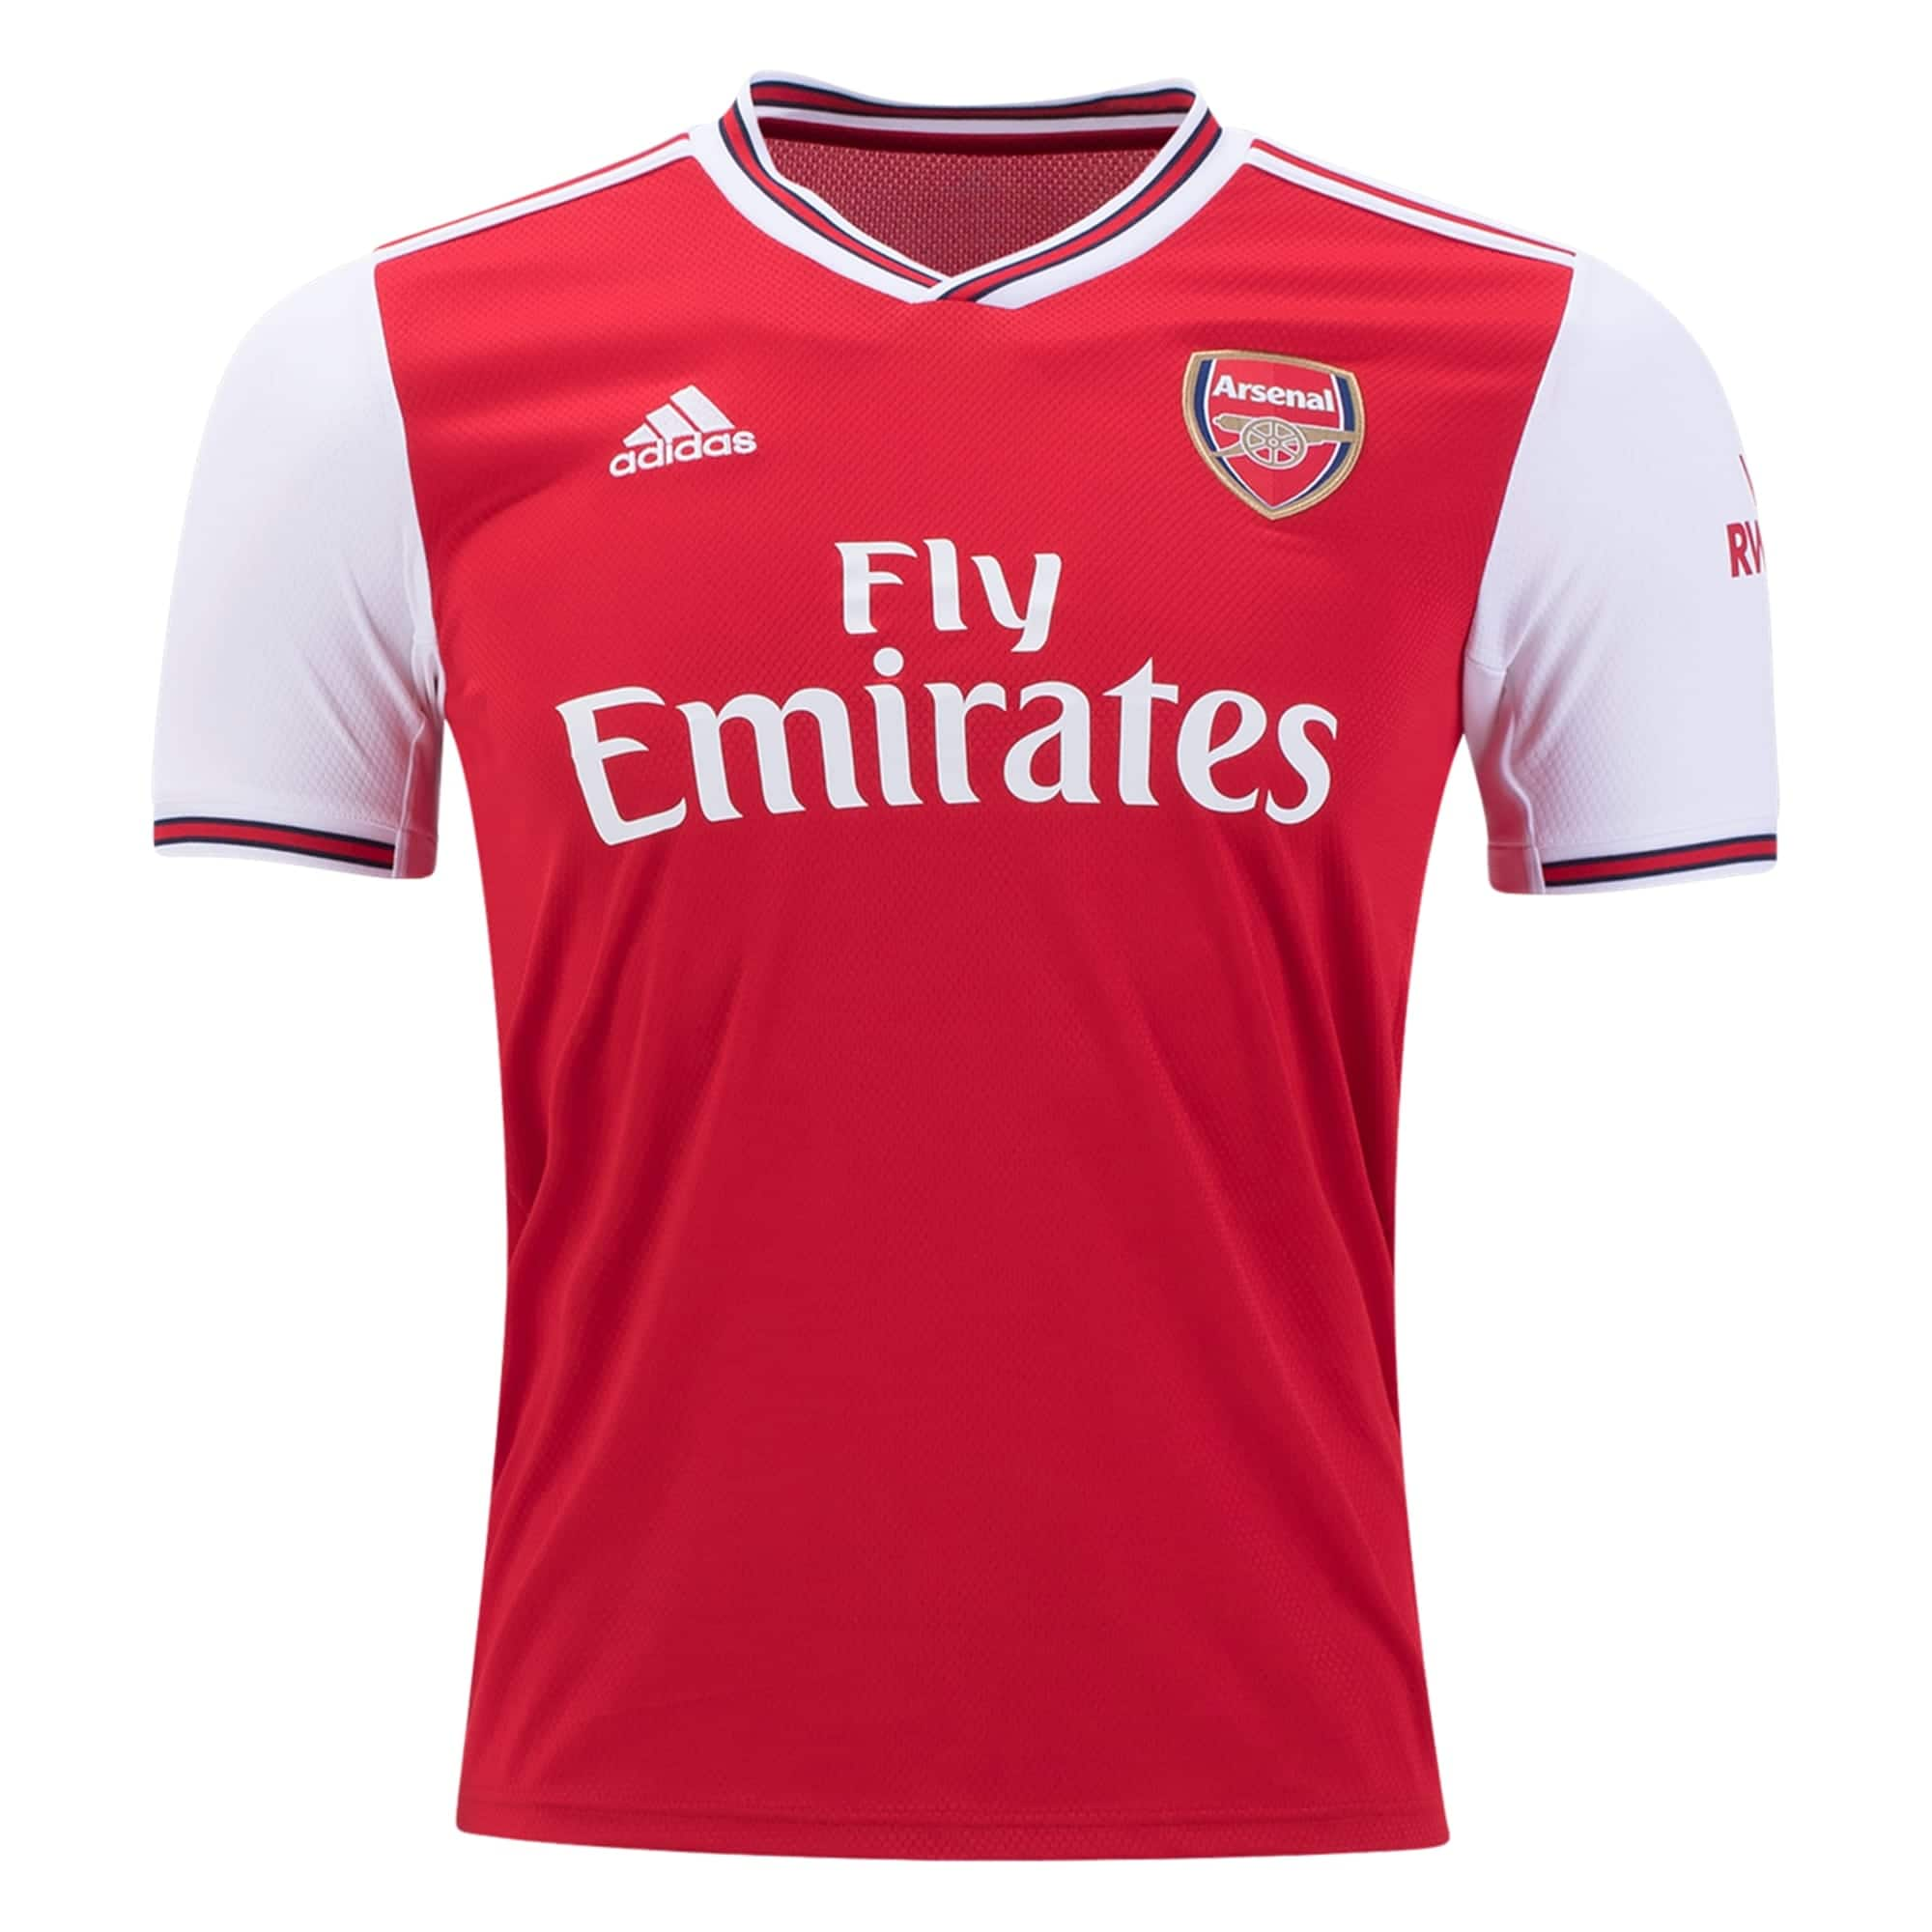 adidas arsenal fleece